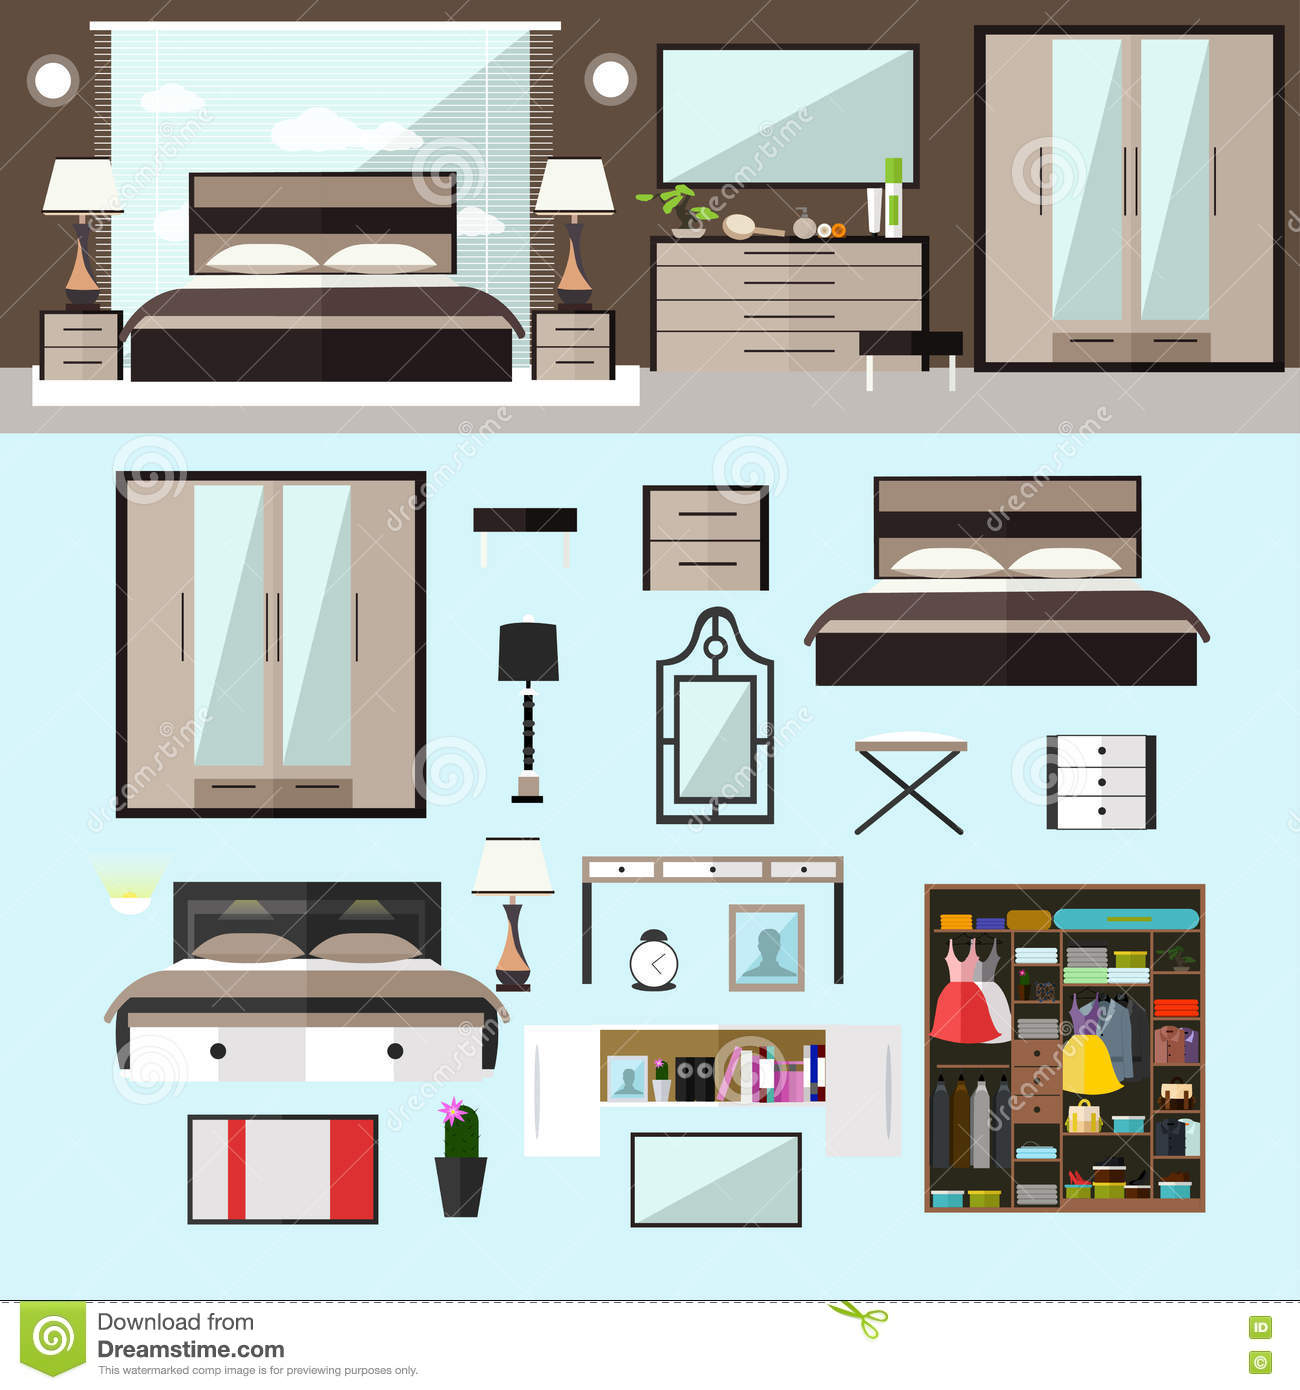 Living room interior flat style vector illustration cartoon vector 68147387 - Home design elements ...